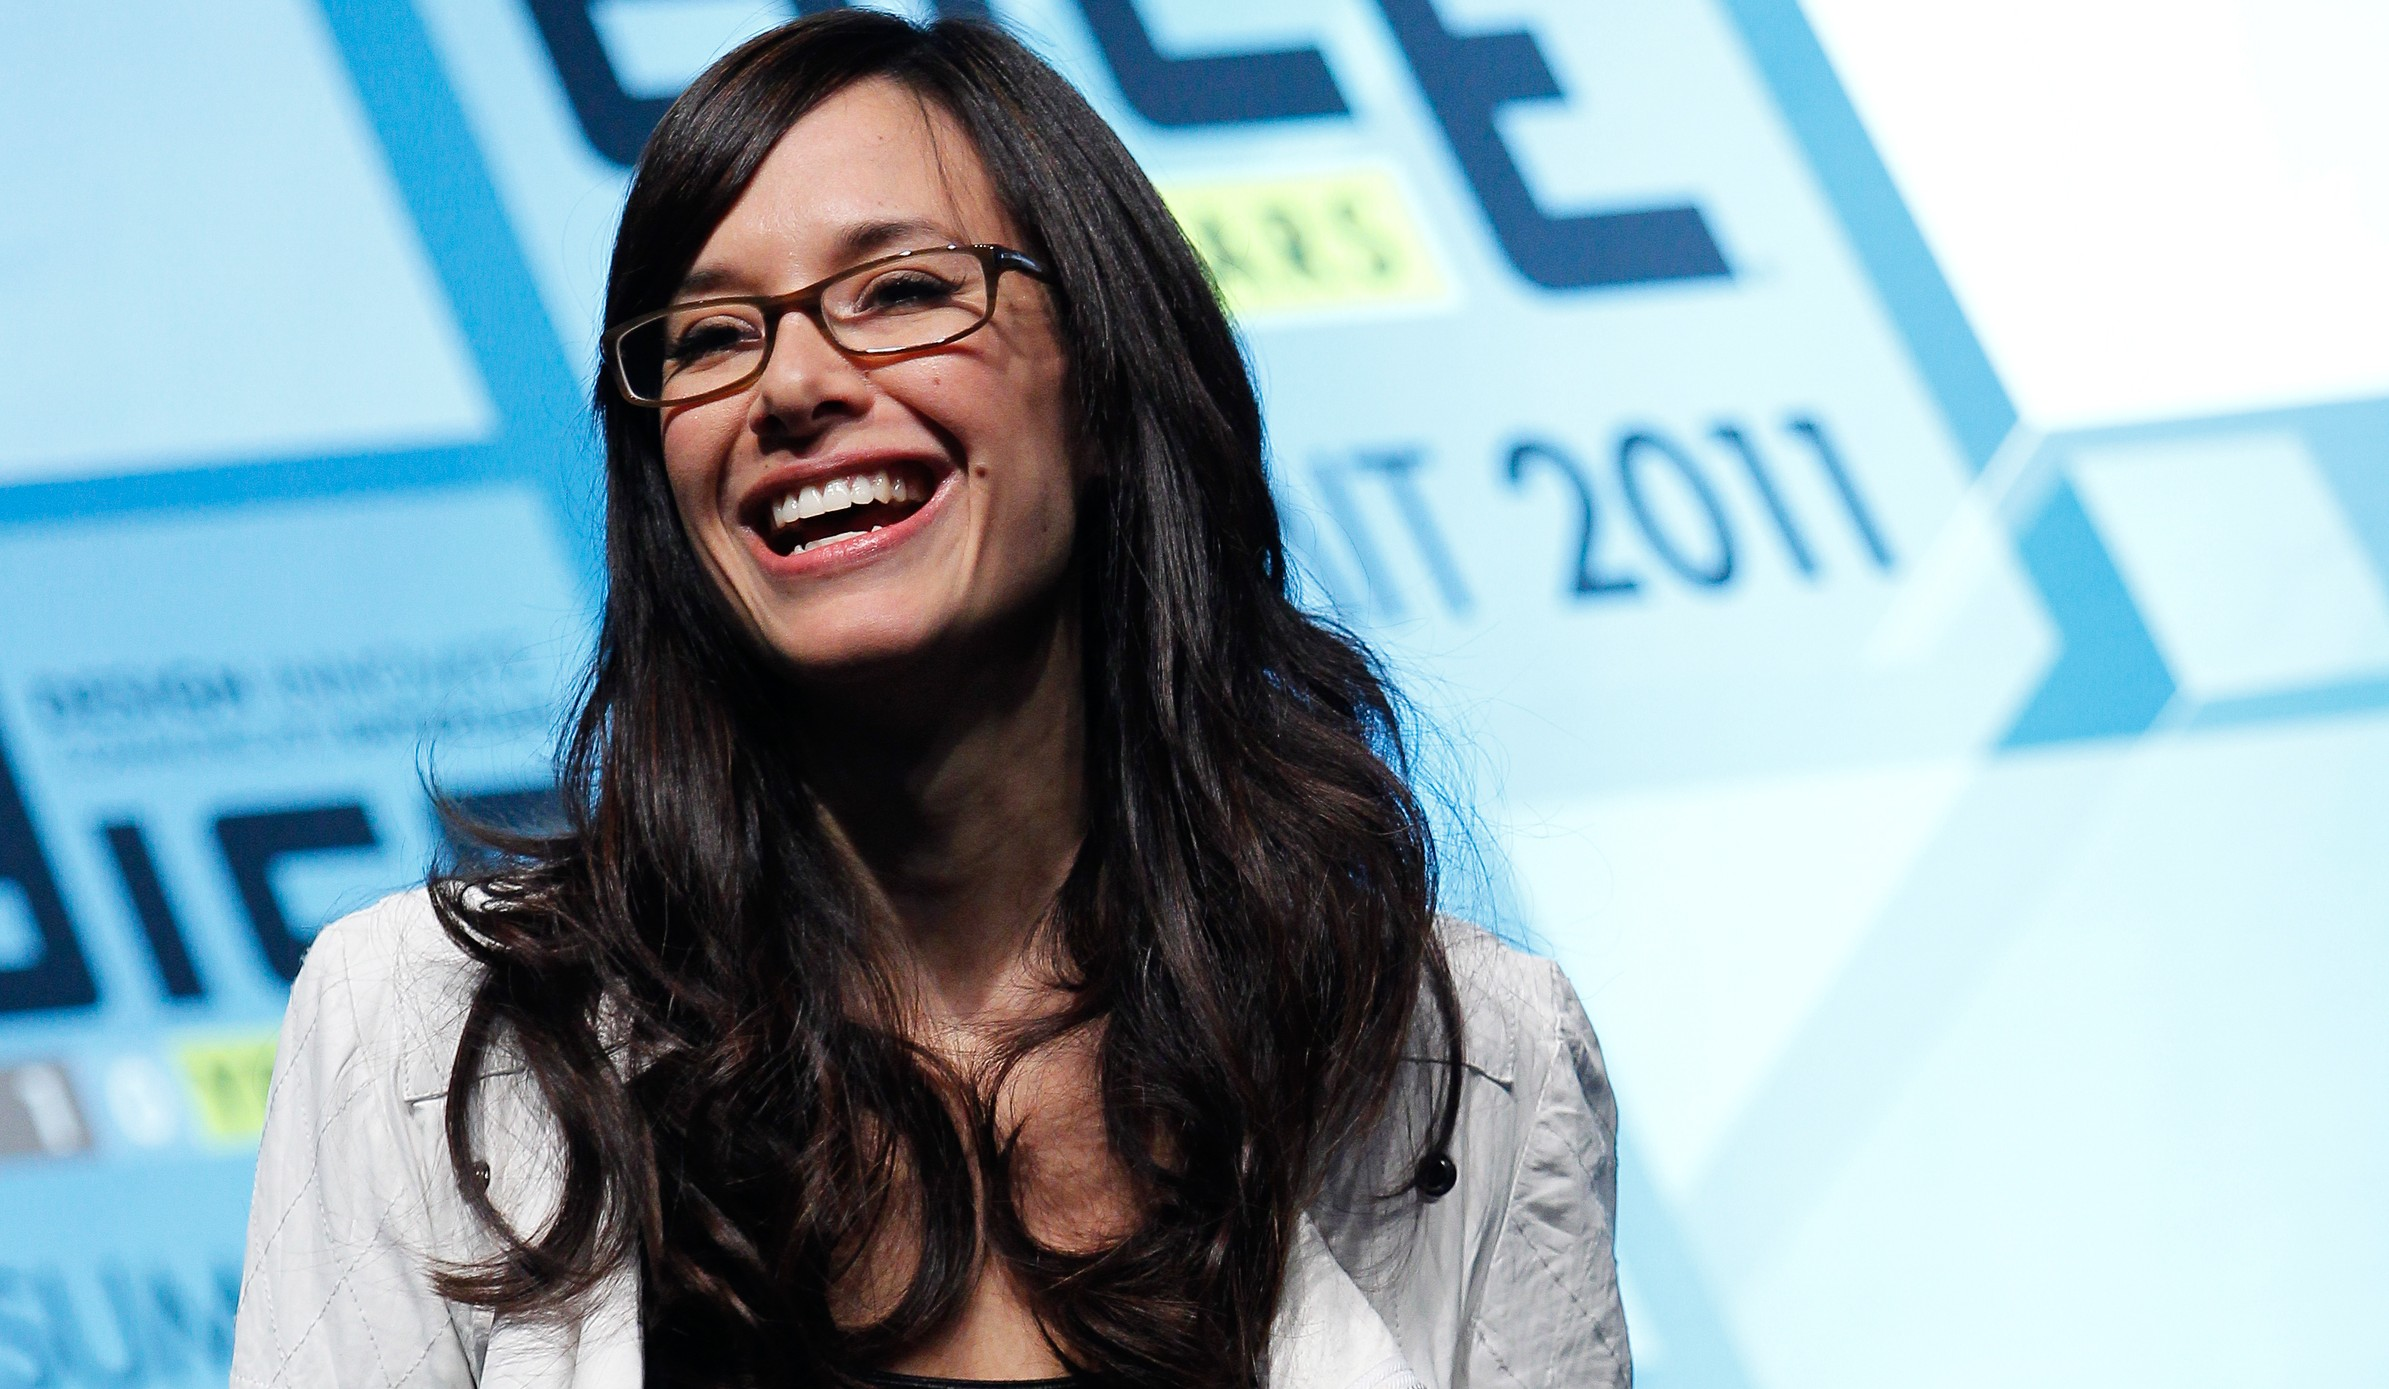 Assassin's Creed producer Jade Raymond has left Ubisoft